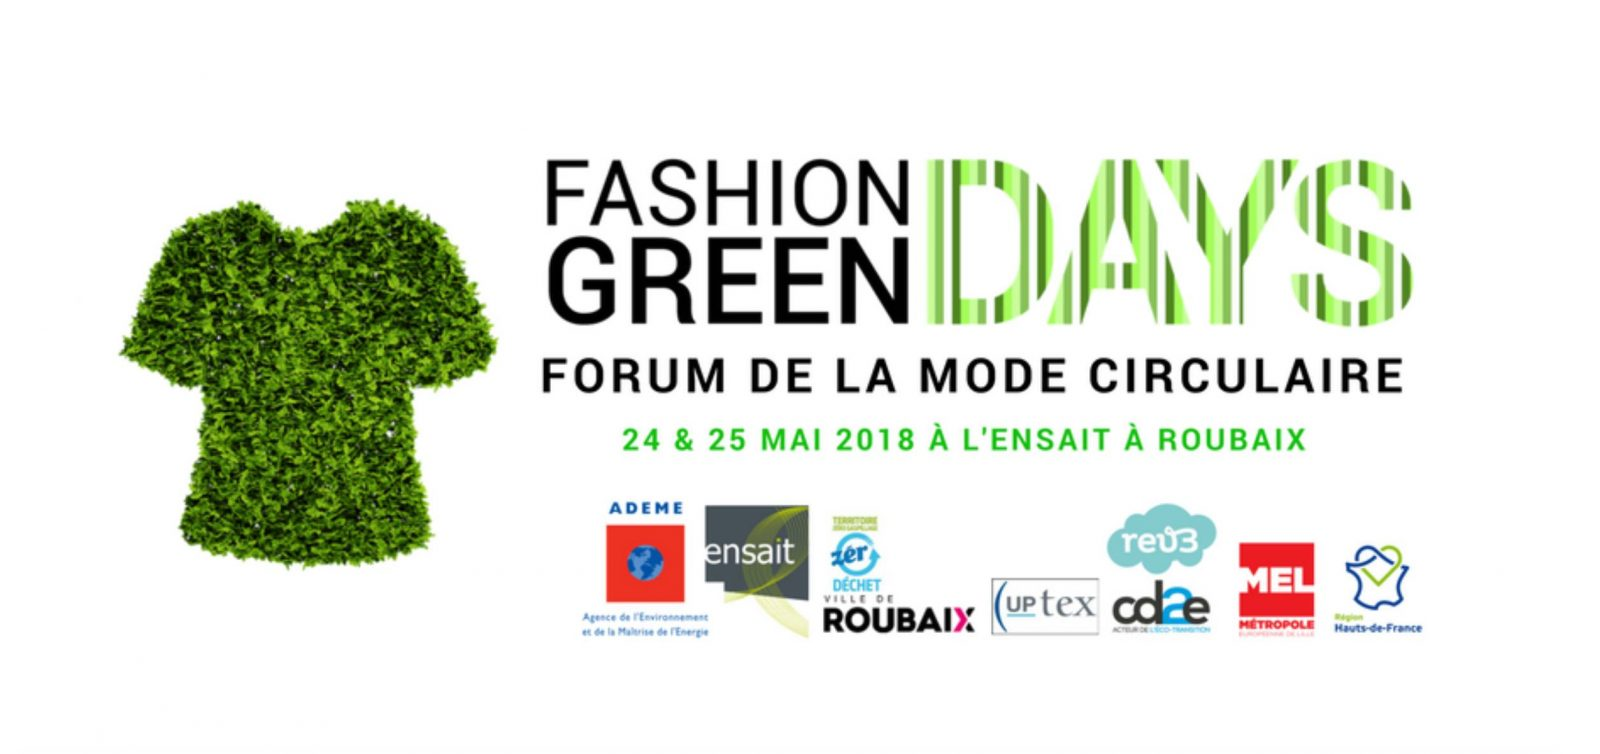 Fashion Green Days 2018